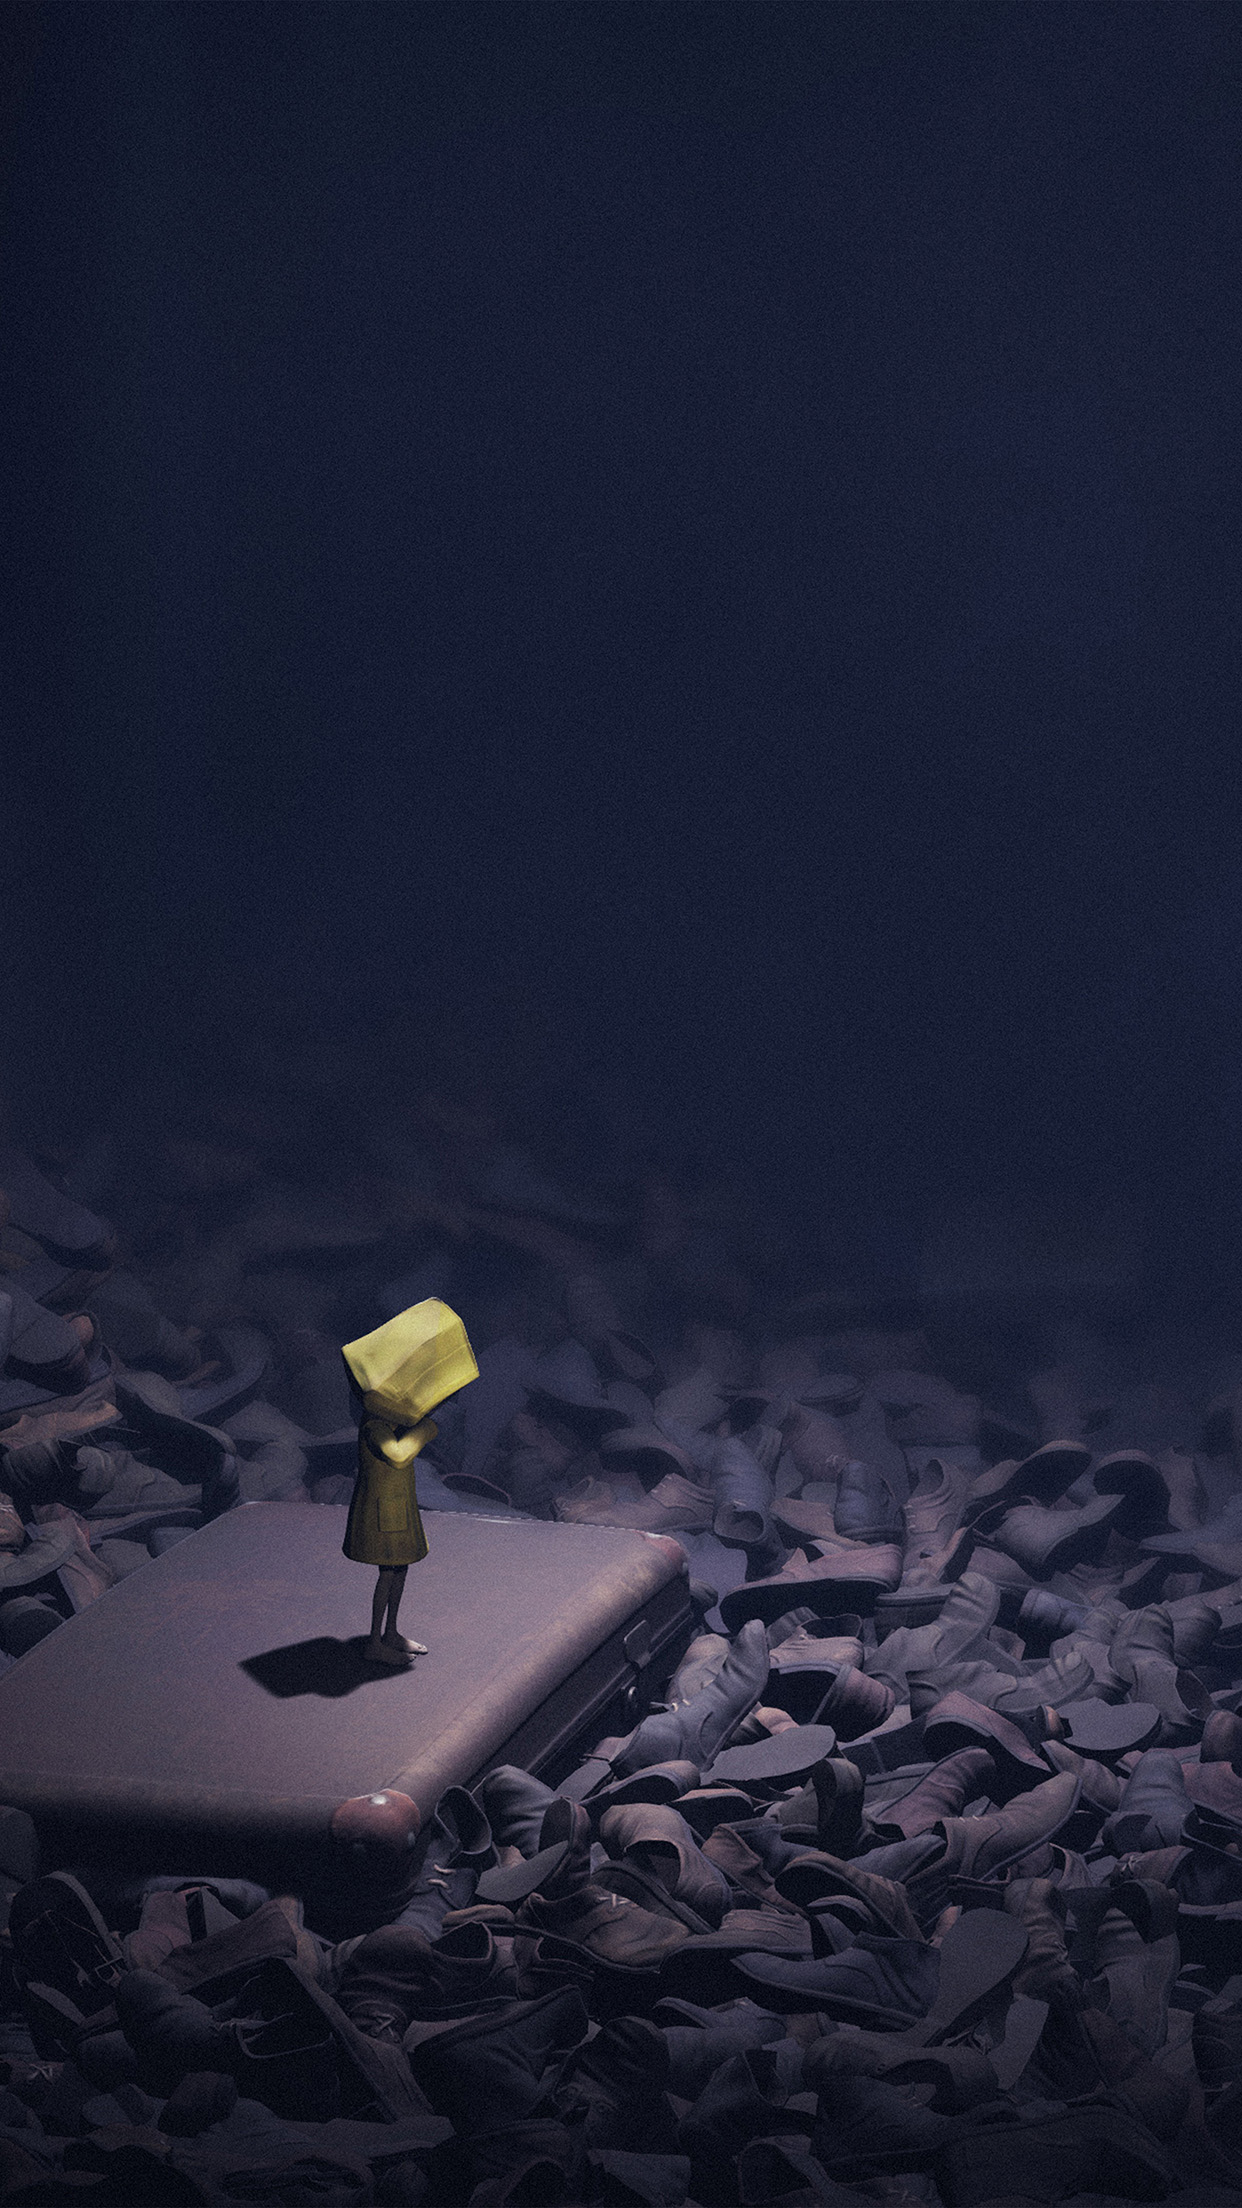 iphone7papers | iphone7 wallpaper | at30-little-nightmares-dark